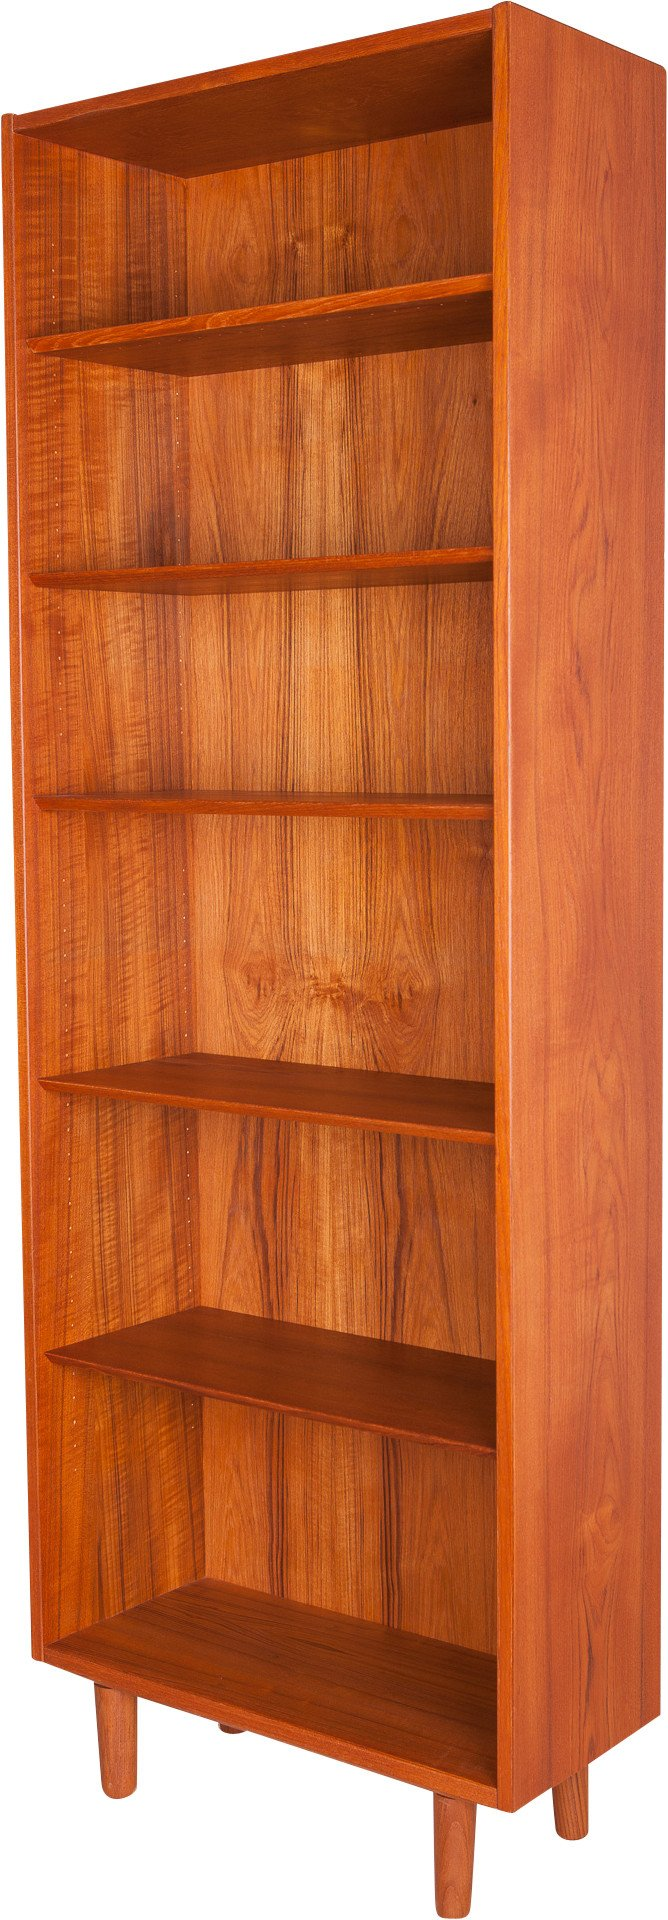 Bookcase by P. Hundevad for Hundevad&Co., Denmark, 1970s